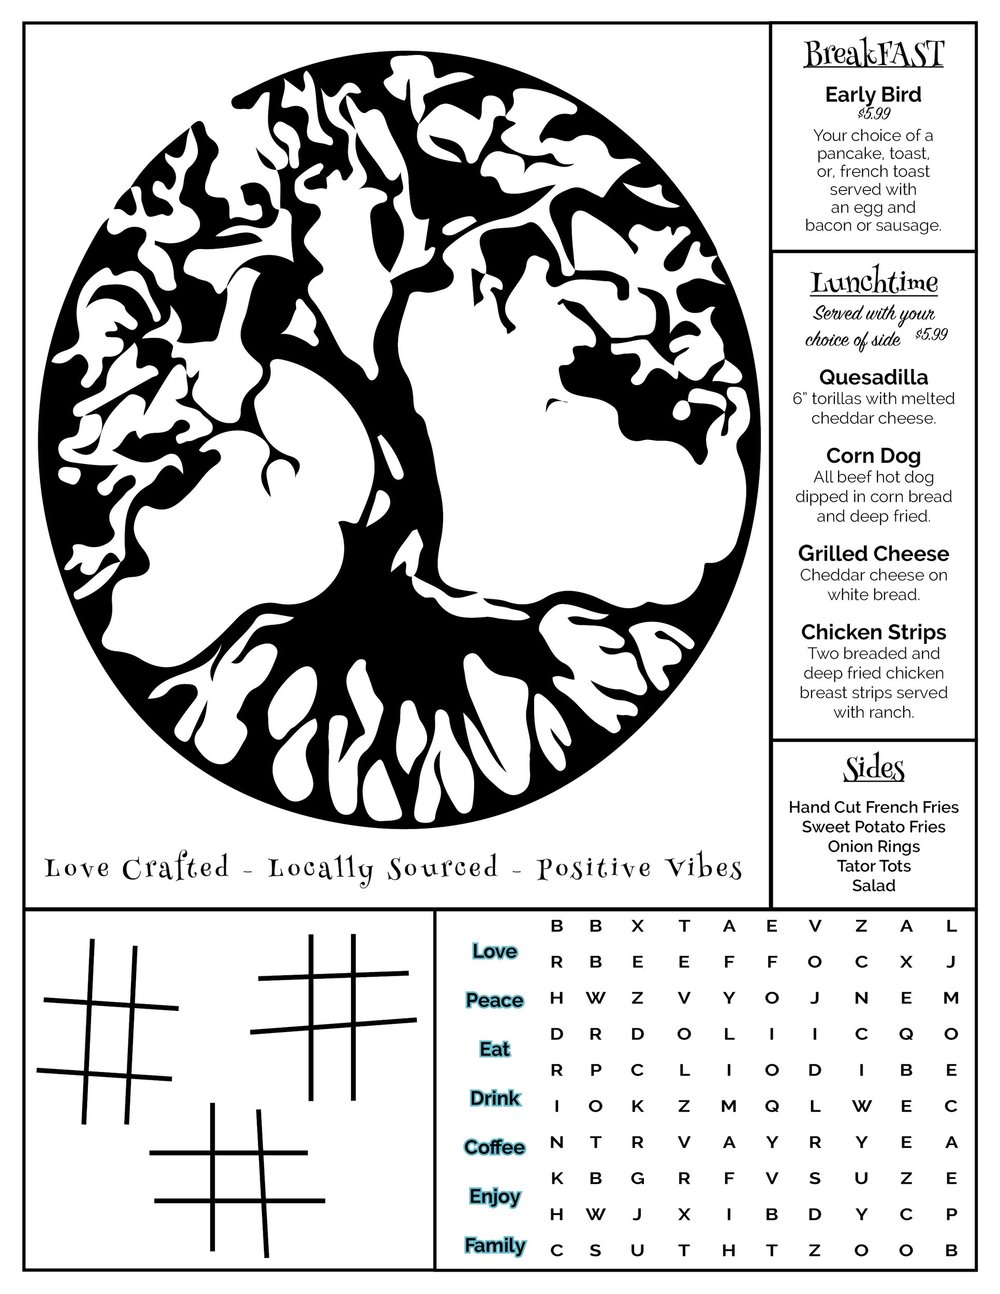 Tree Kids Menu.jpg